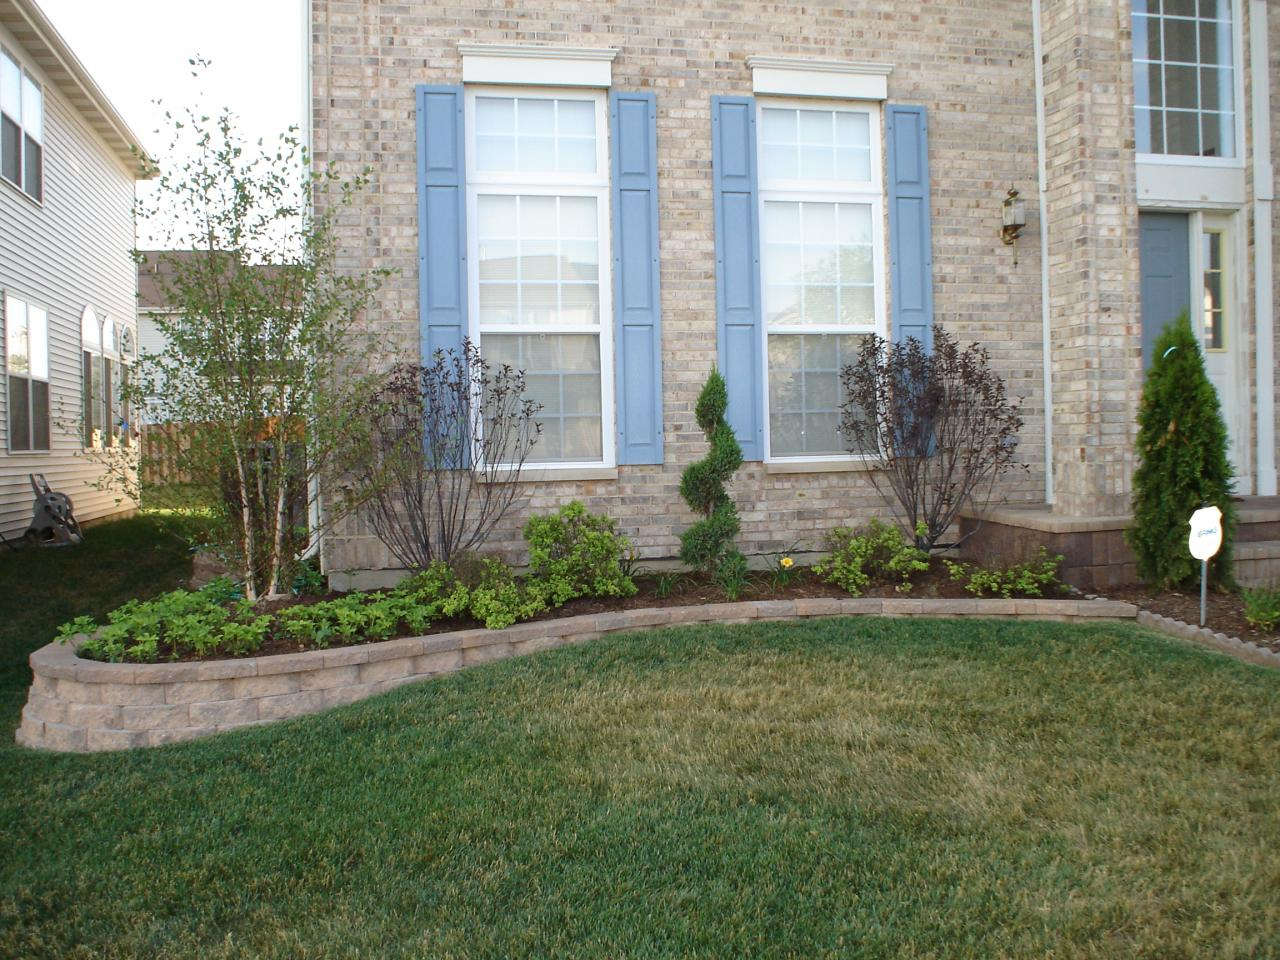 Landscaping Retaining Walls : slope to j retaining walls free estimates call concrete landscaping